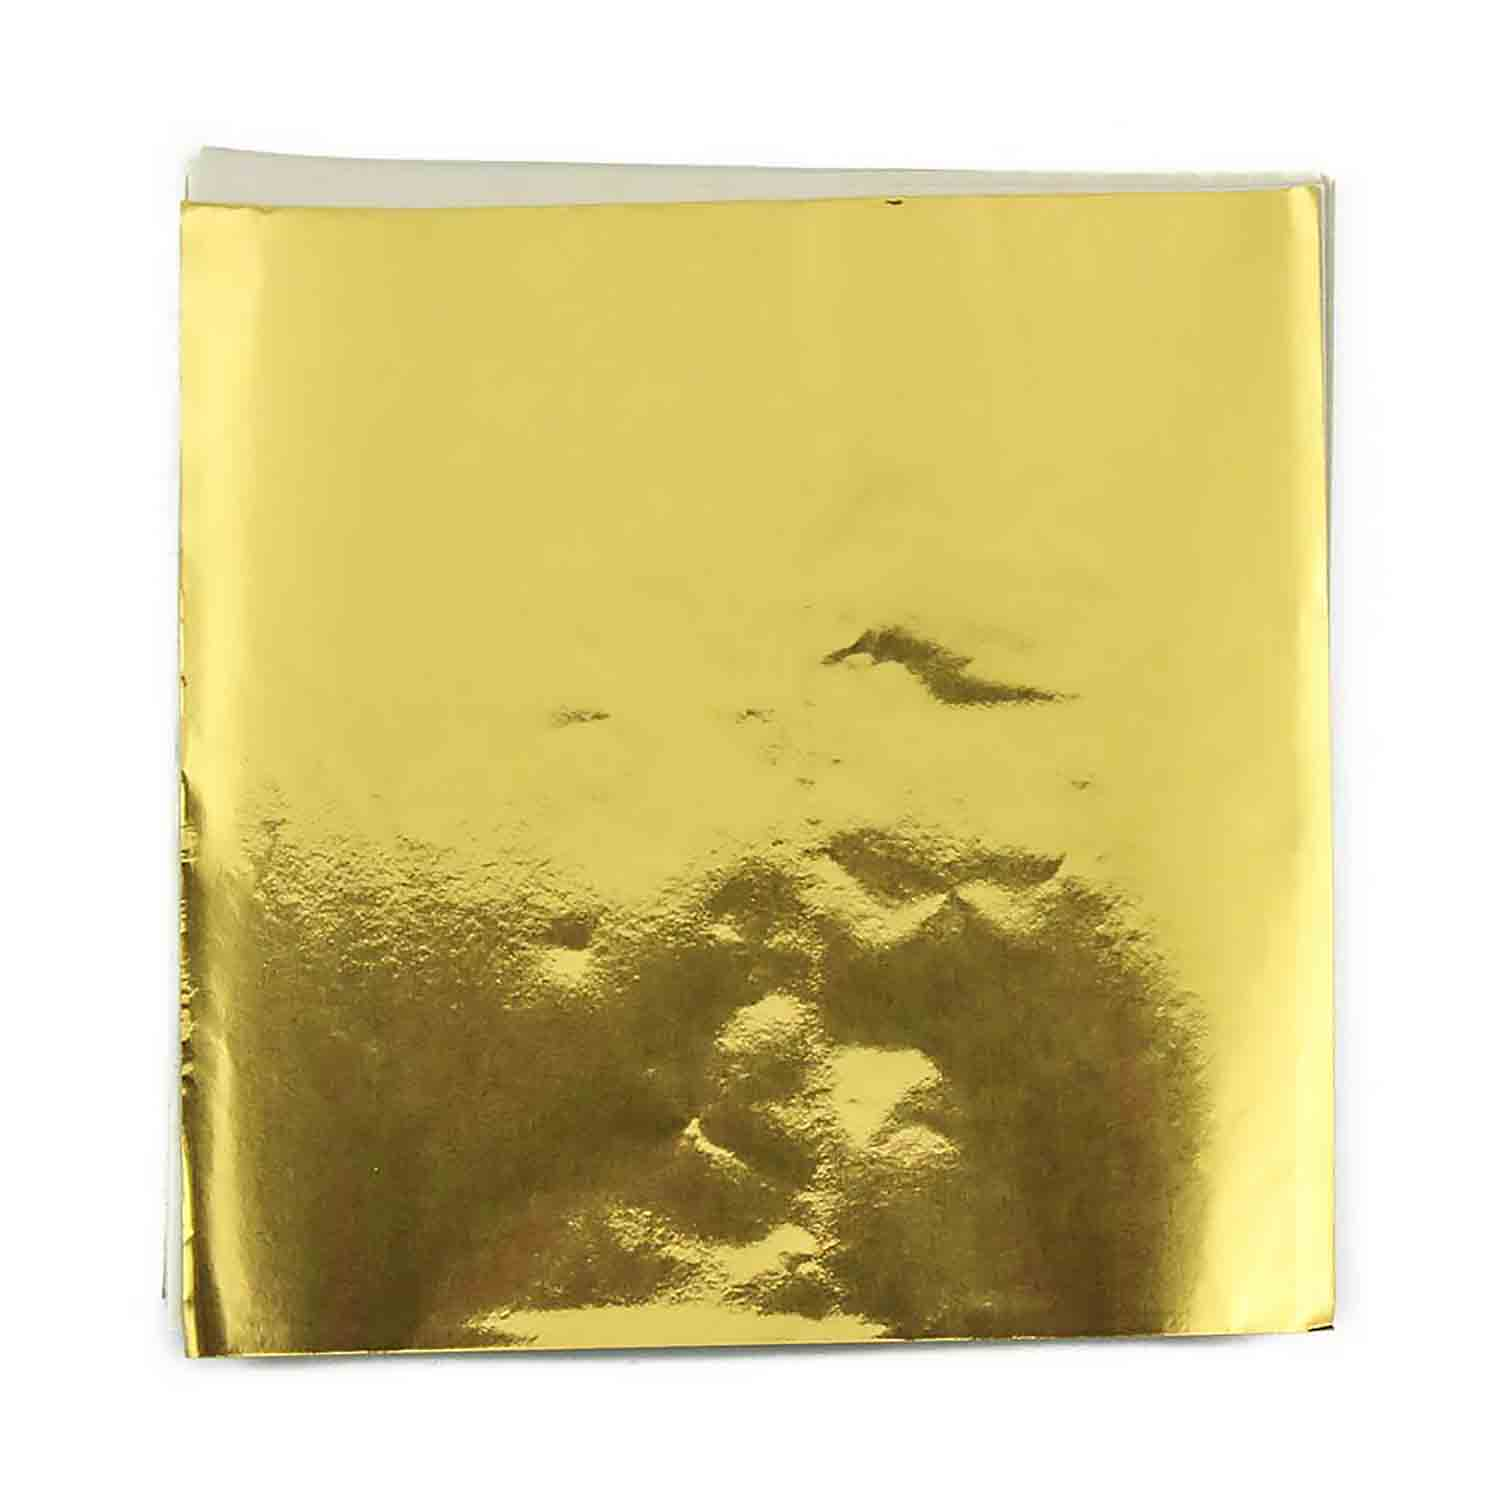 "3 x 3"" Foil Wrapper Gold"